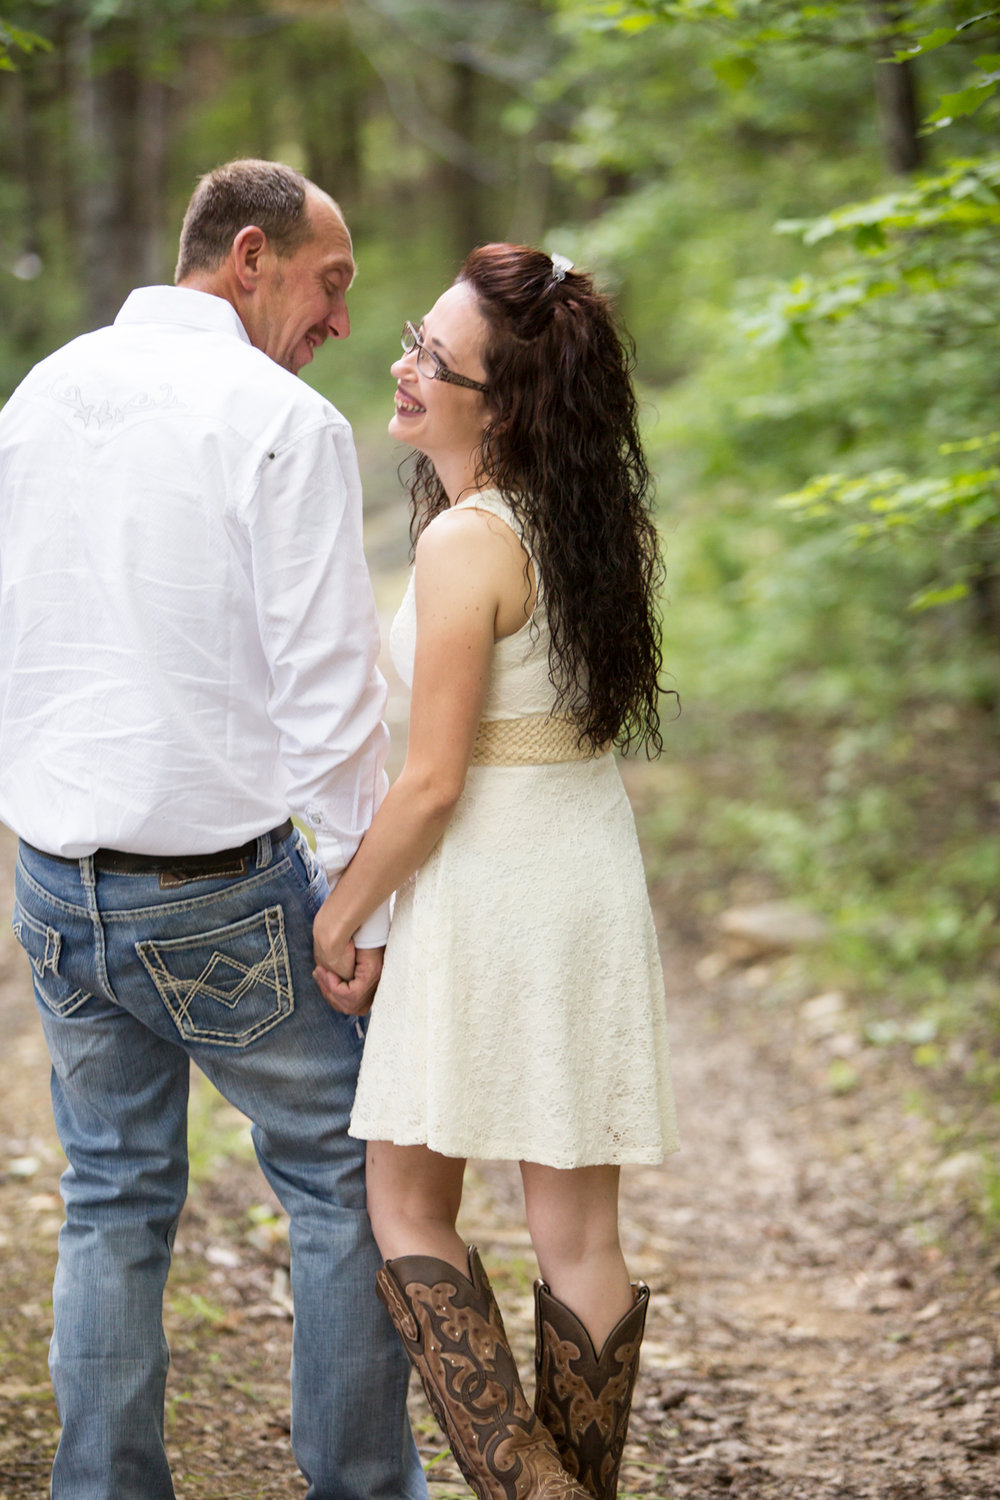 Romantic Engagement Photos Nashville